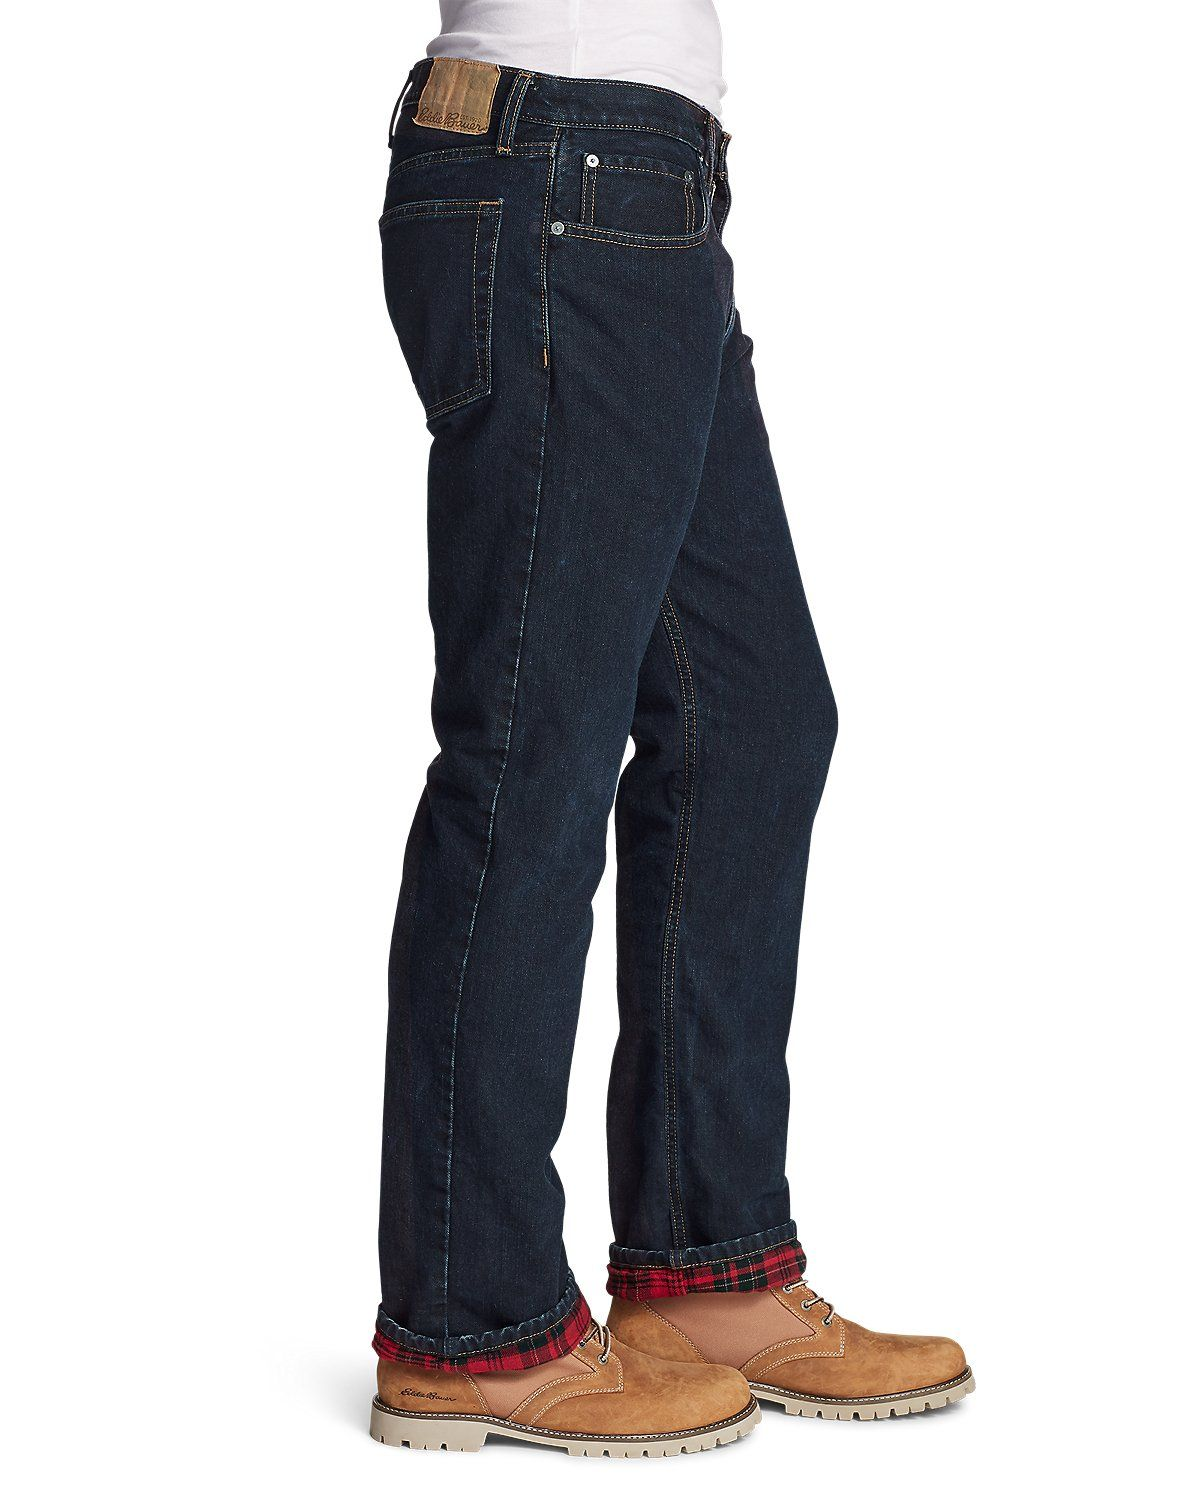 Men's Flannellined Jeans Relaxed Fit Eddie Bauer